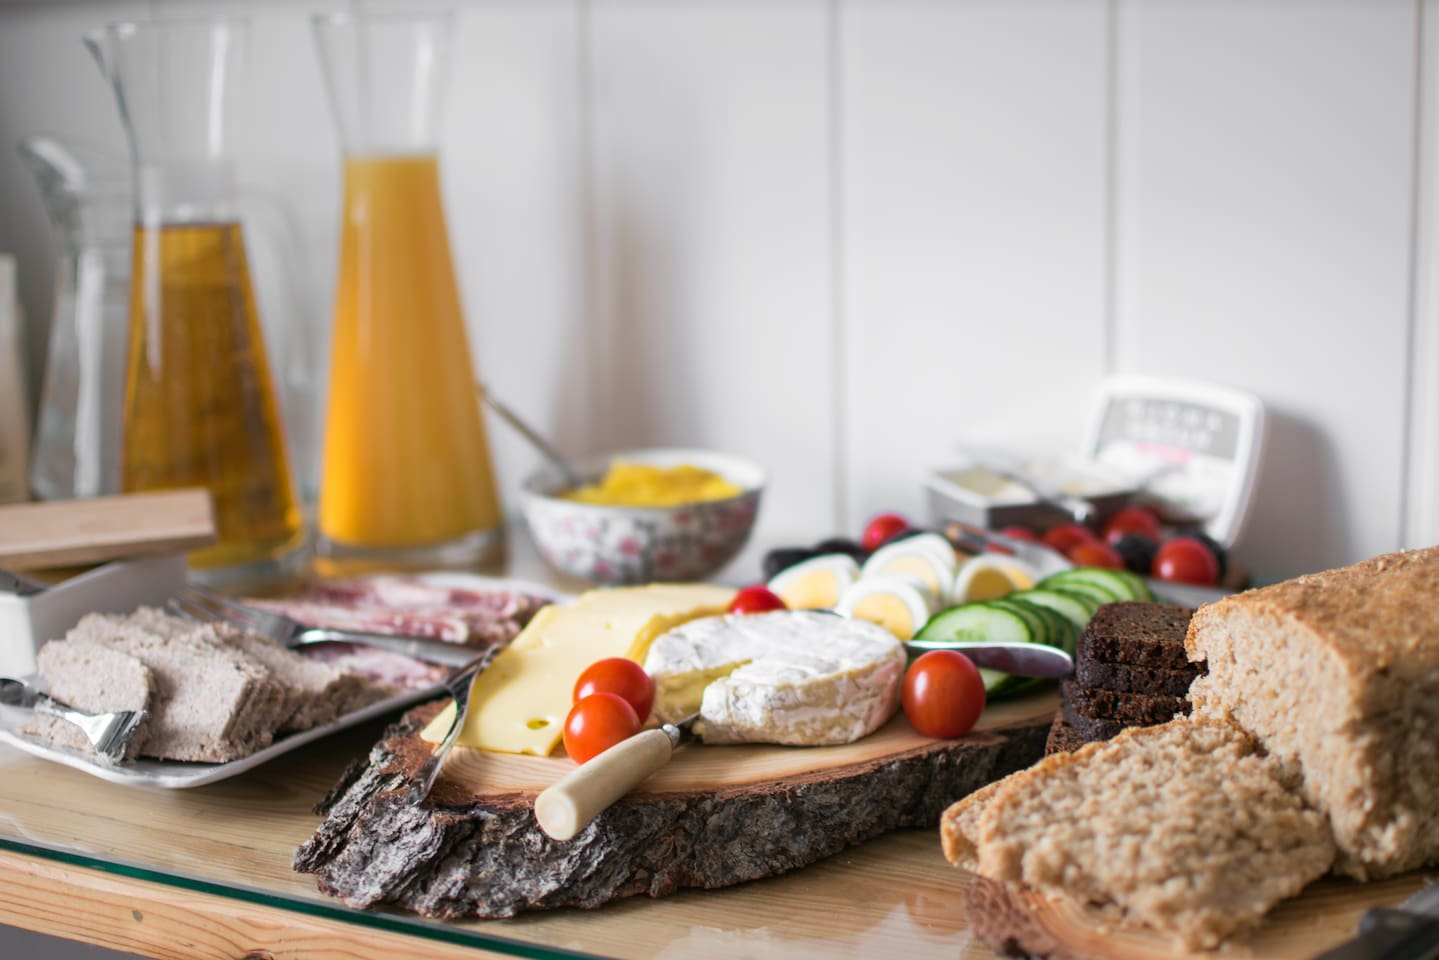 Icelandic and homemade breakfast is included